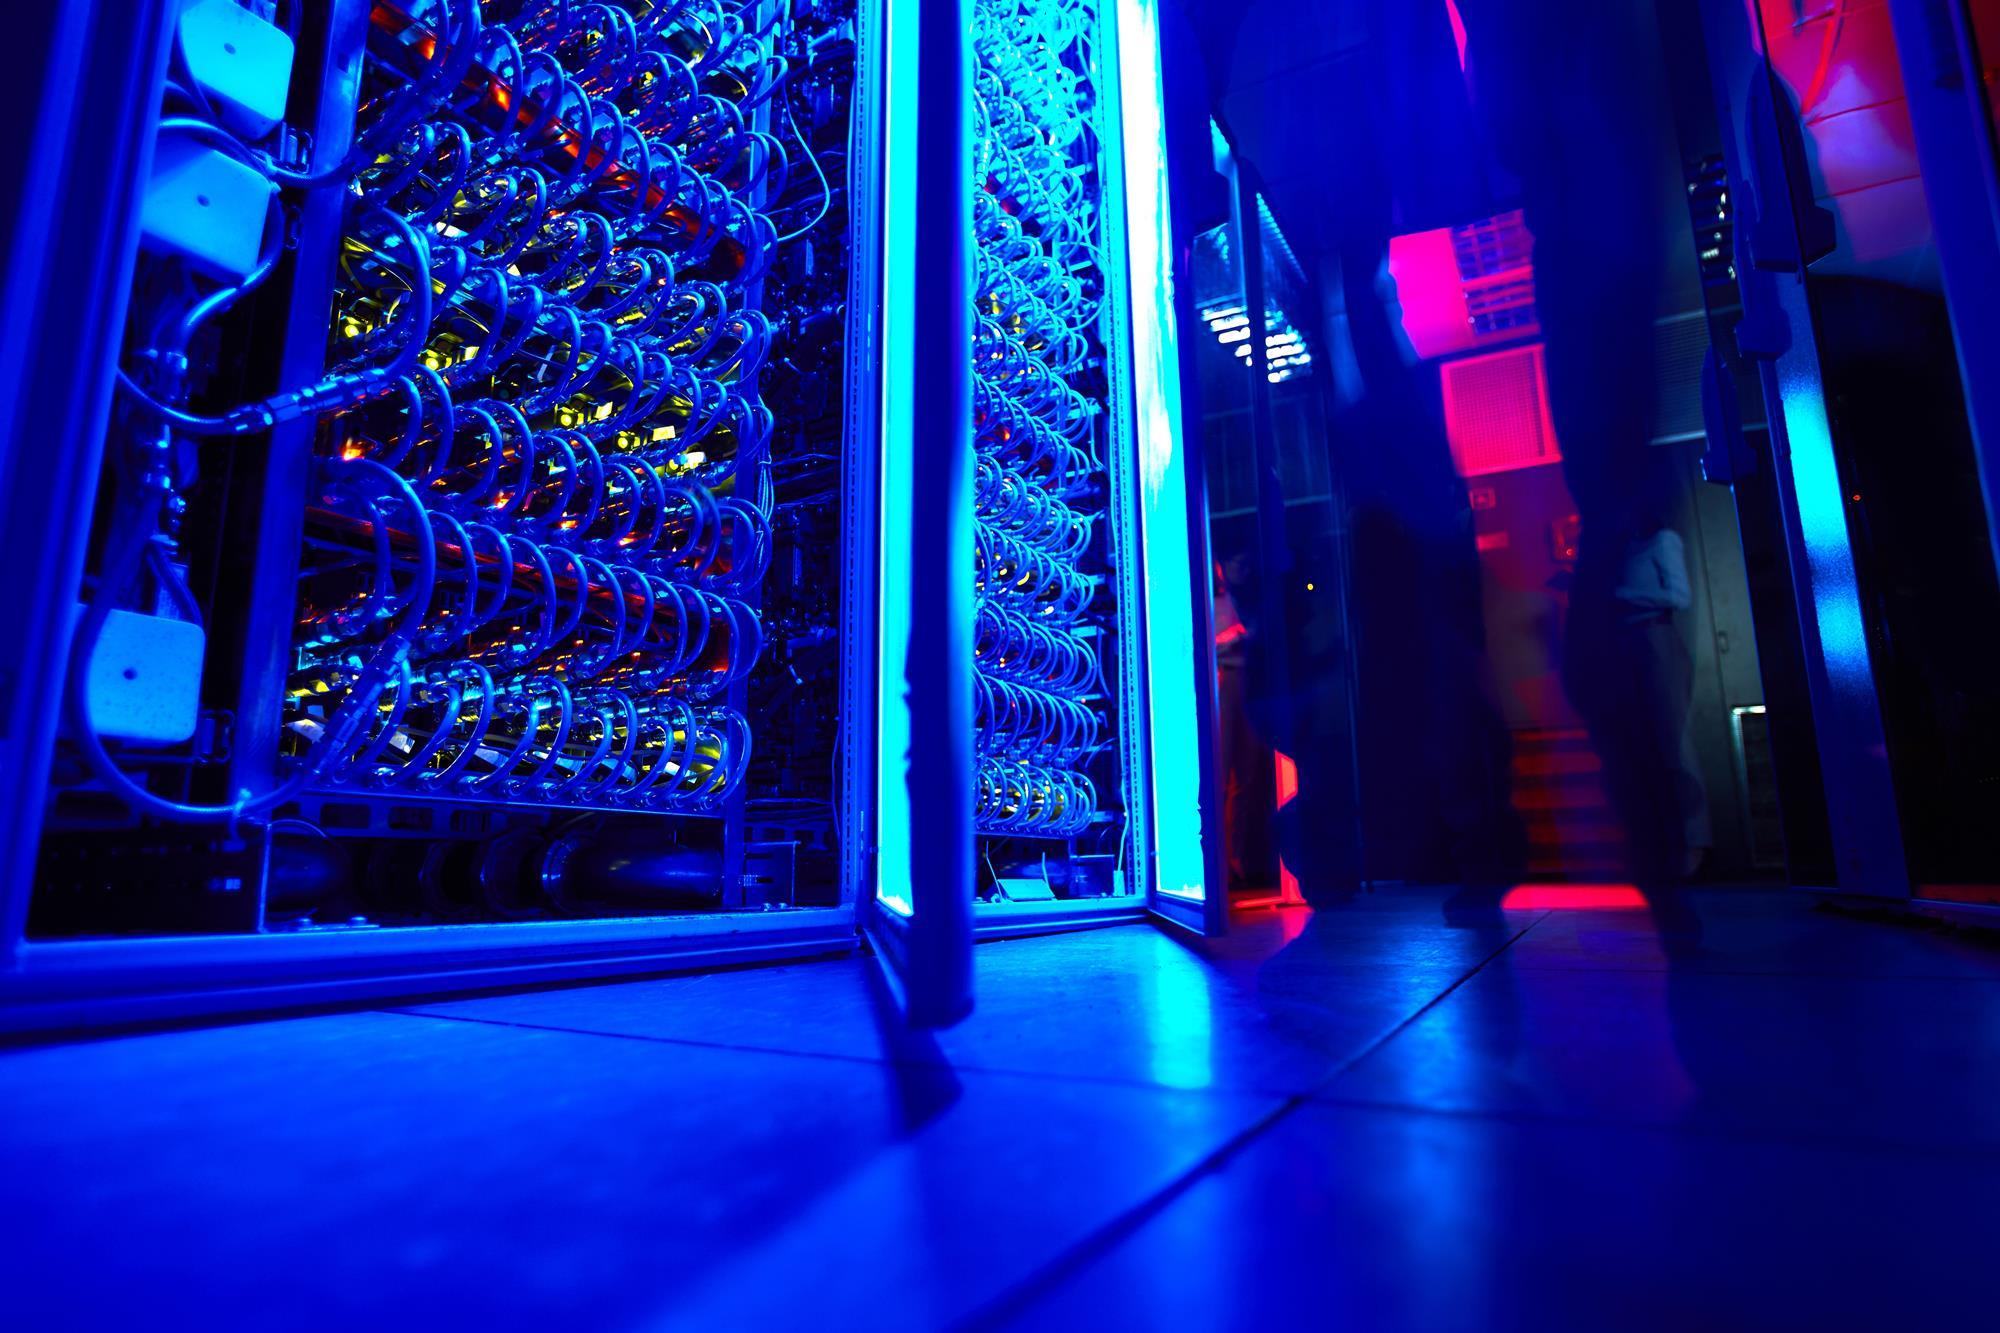 European commission to invest €1 billion in supercomputers